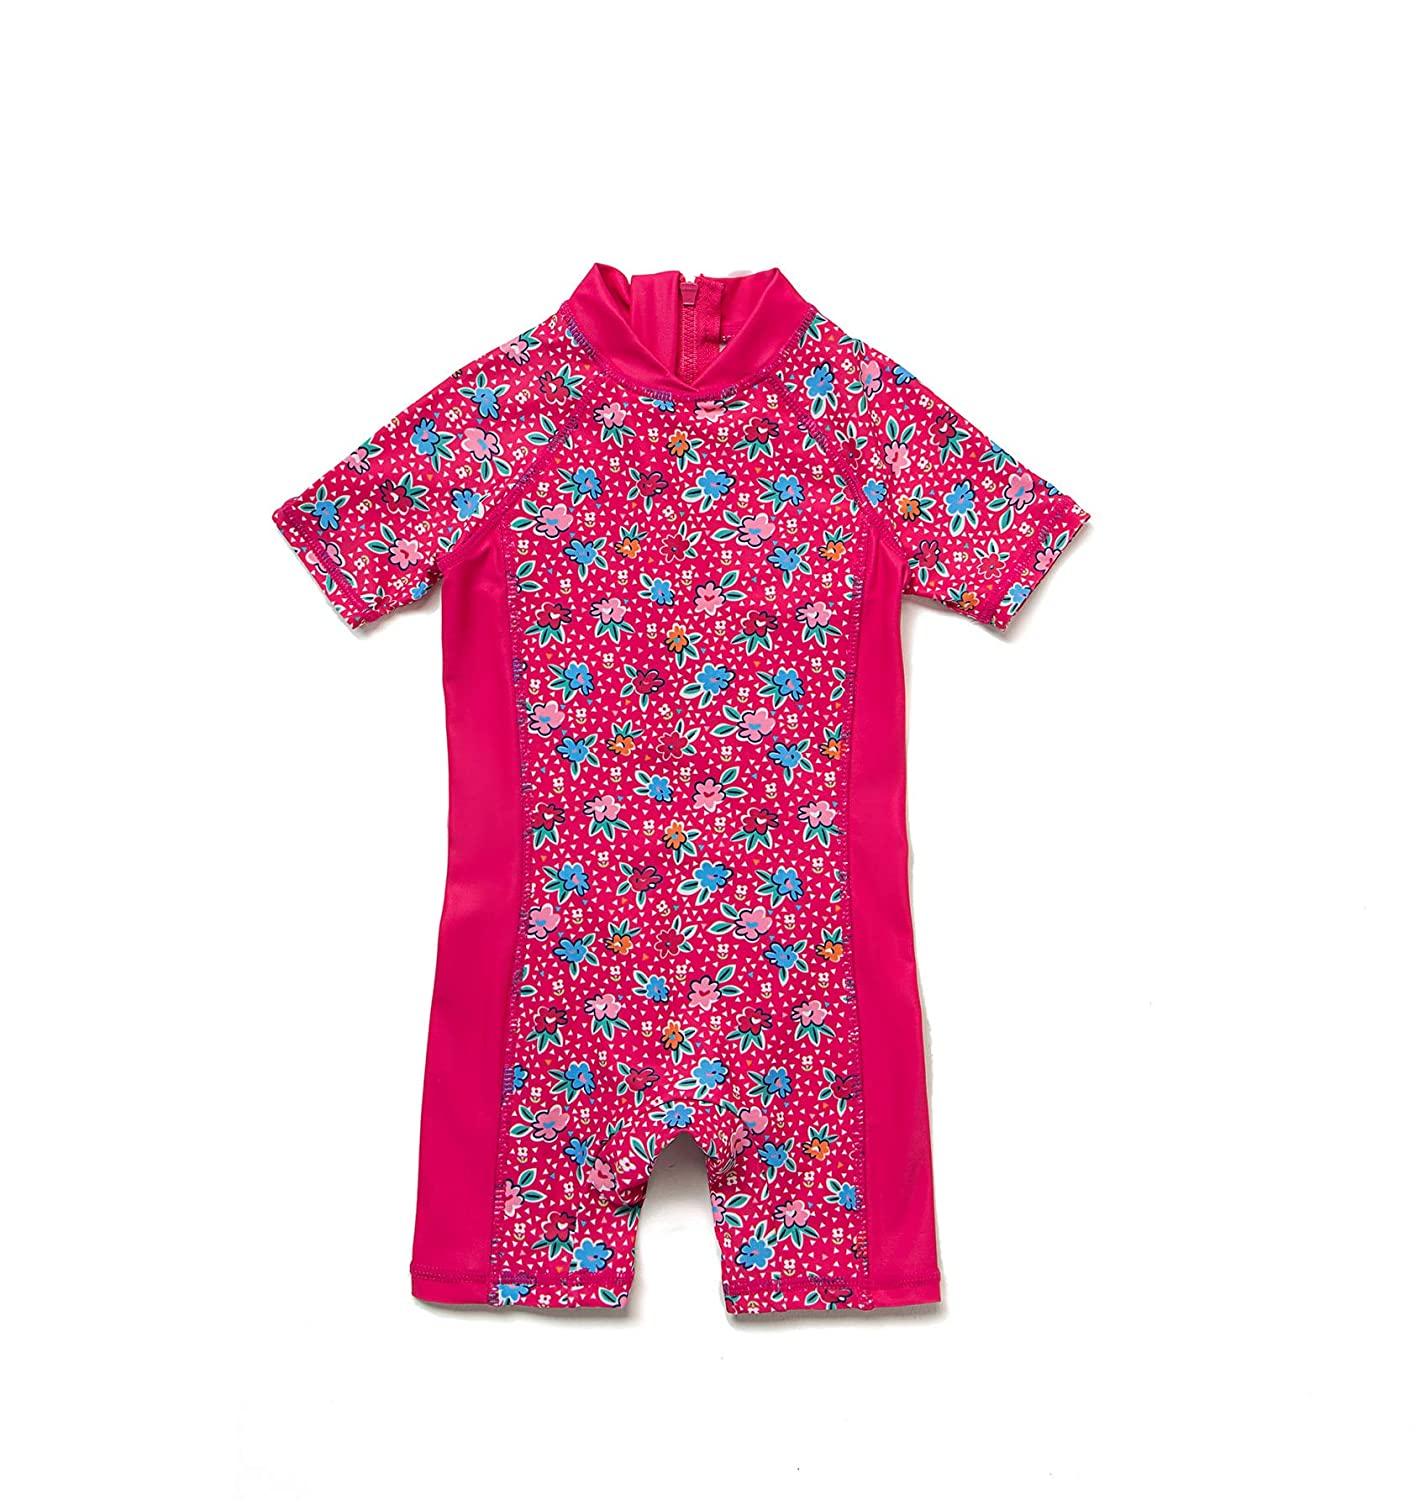 Sun Protection One Pieces Short Sleeves Swimwear with Sun Hat Mei Red Flowers,3-6Months Baby Girls Sunsuit UPF 50